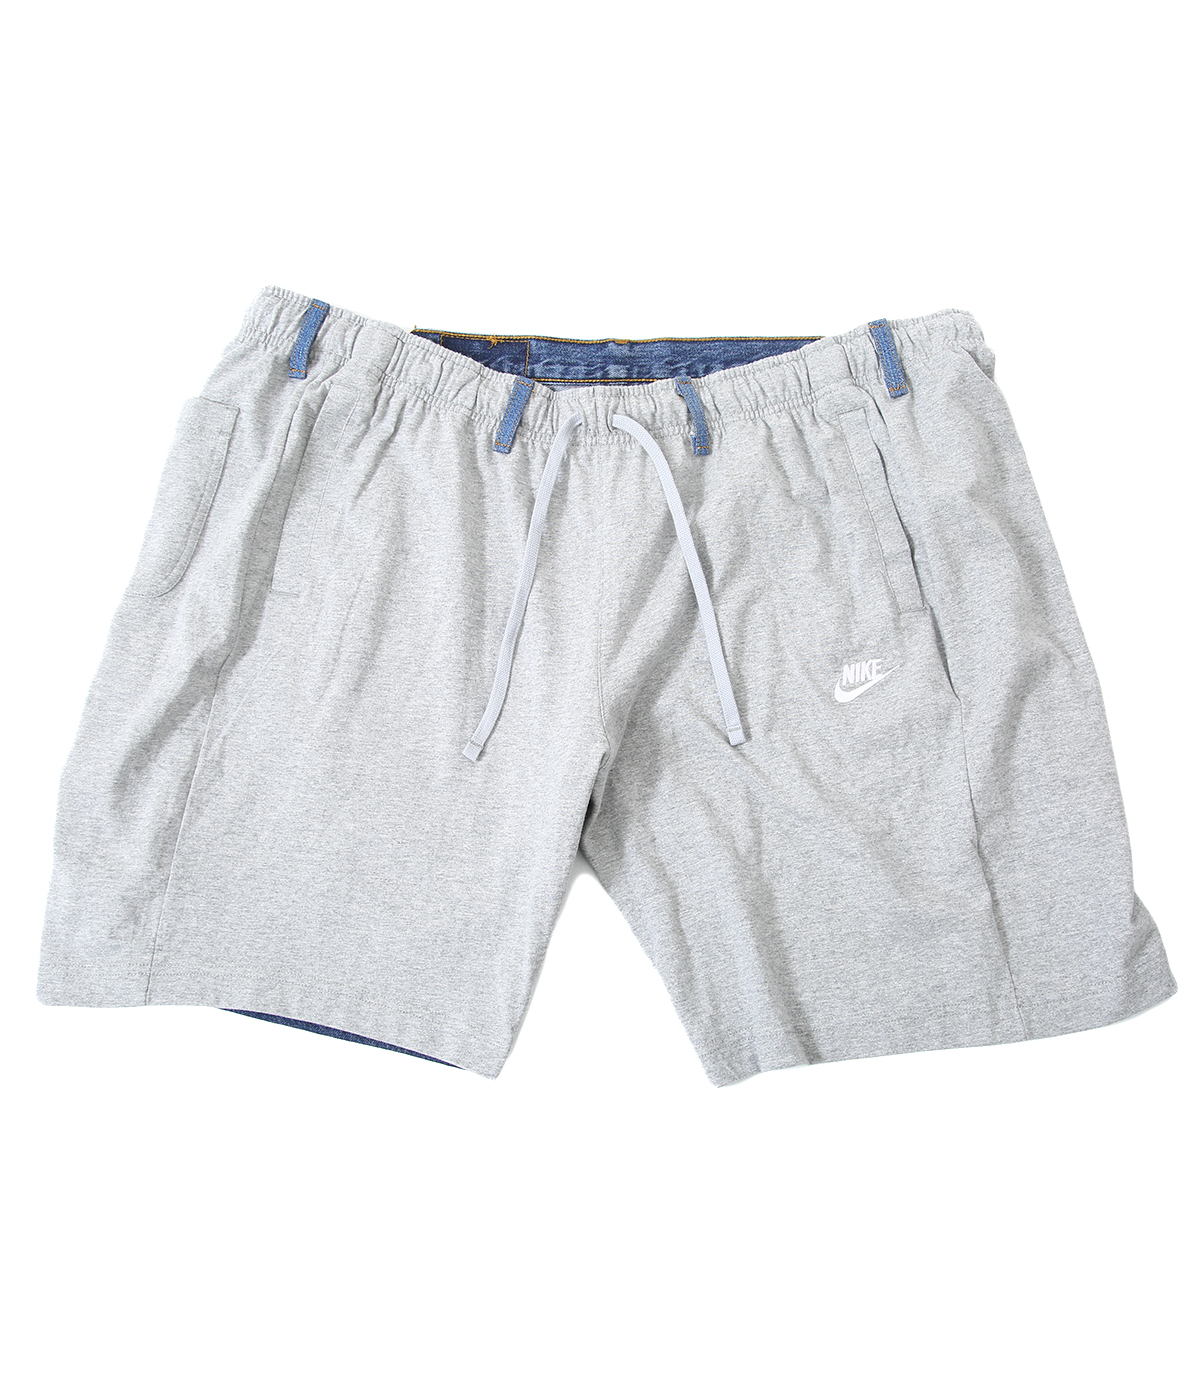 Over jogging shorts